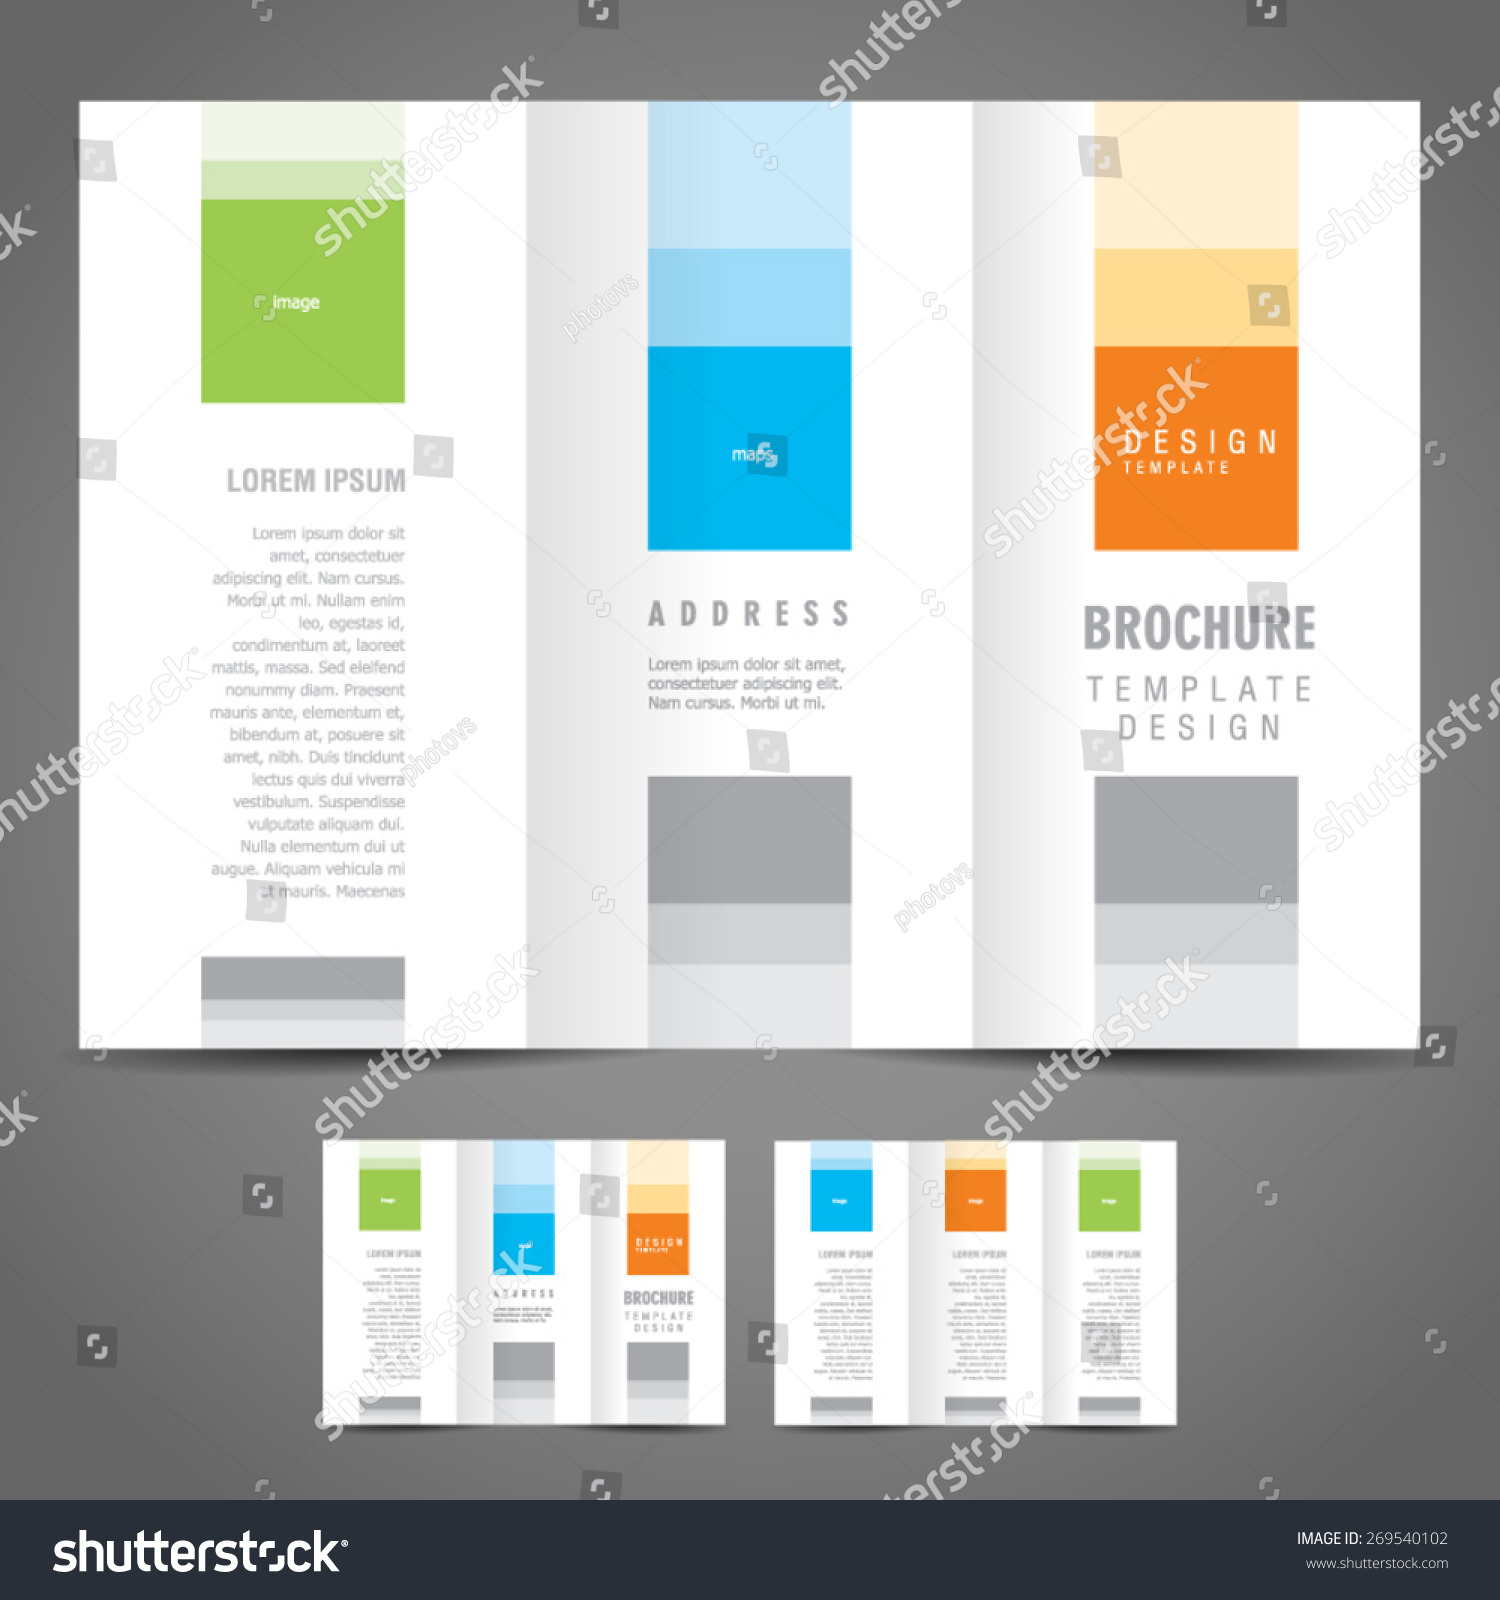 simple brochure design template trifold stock vector royalty free